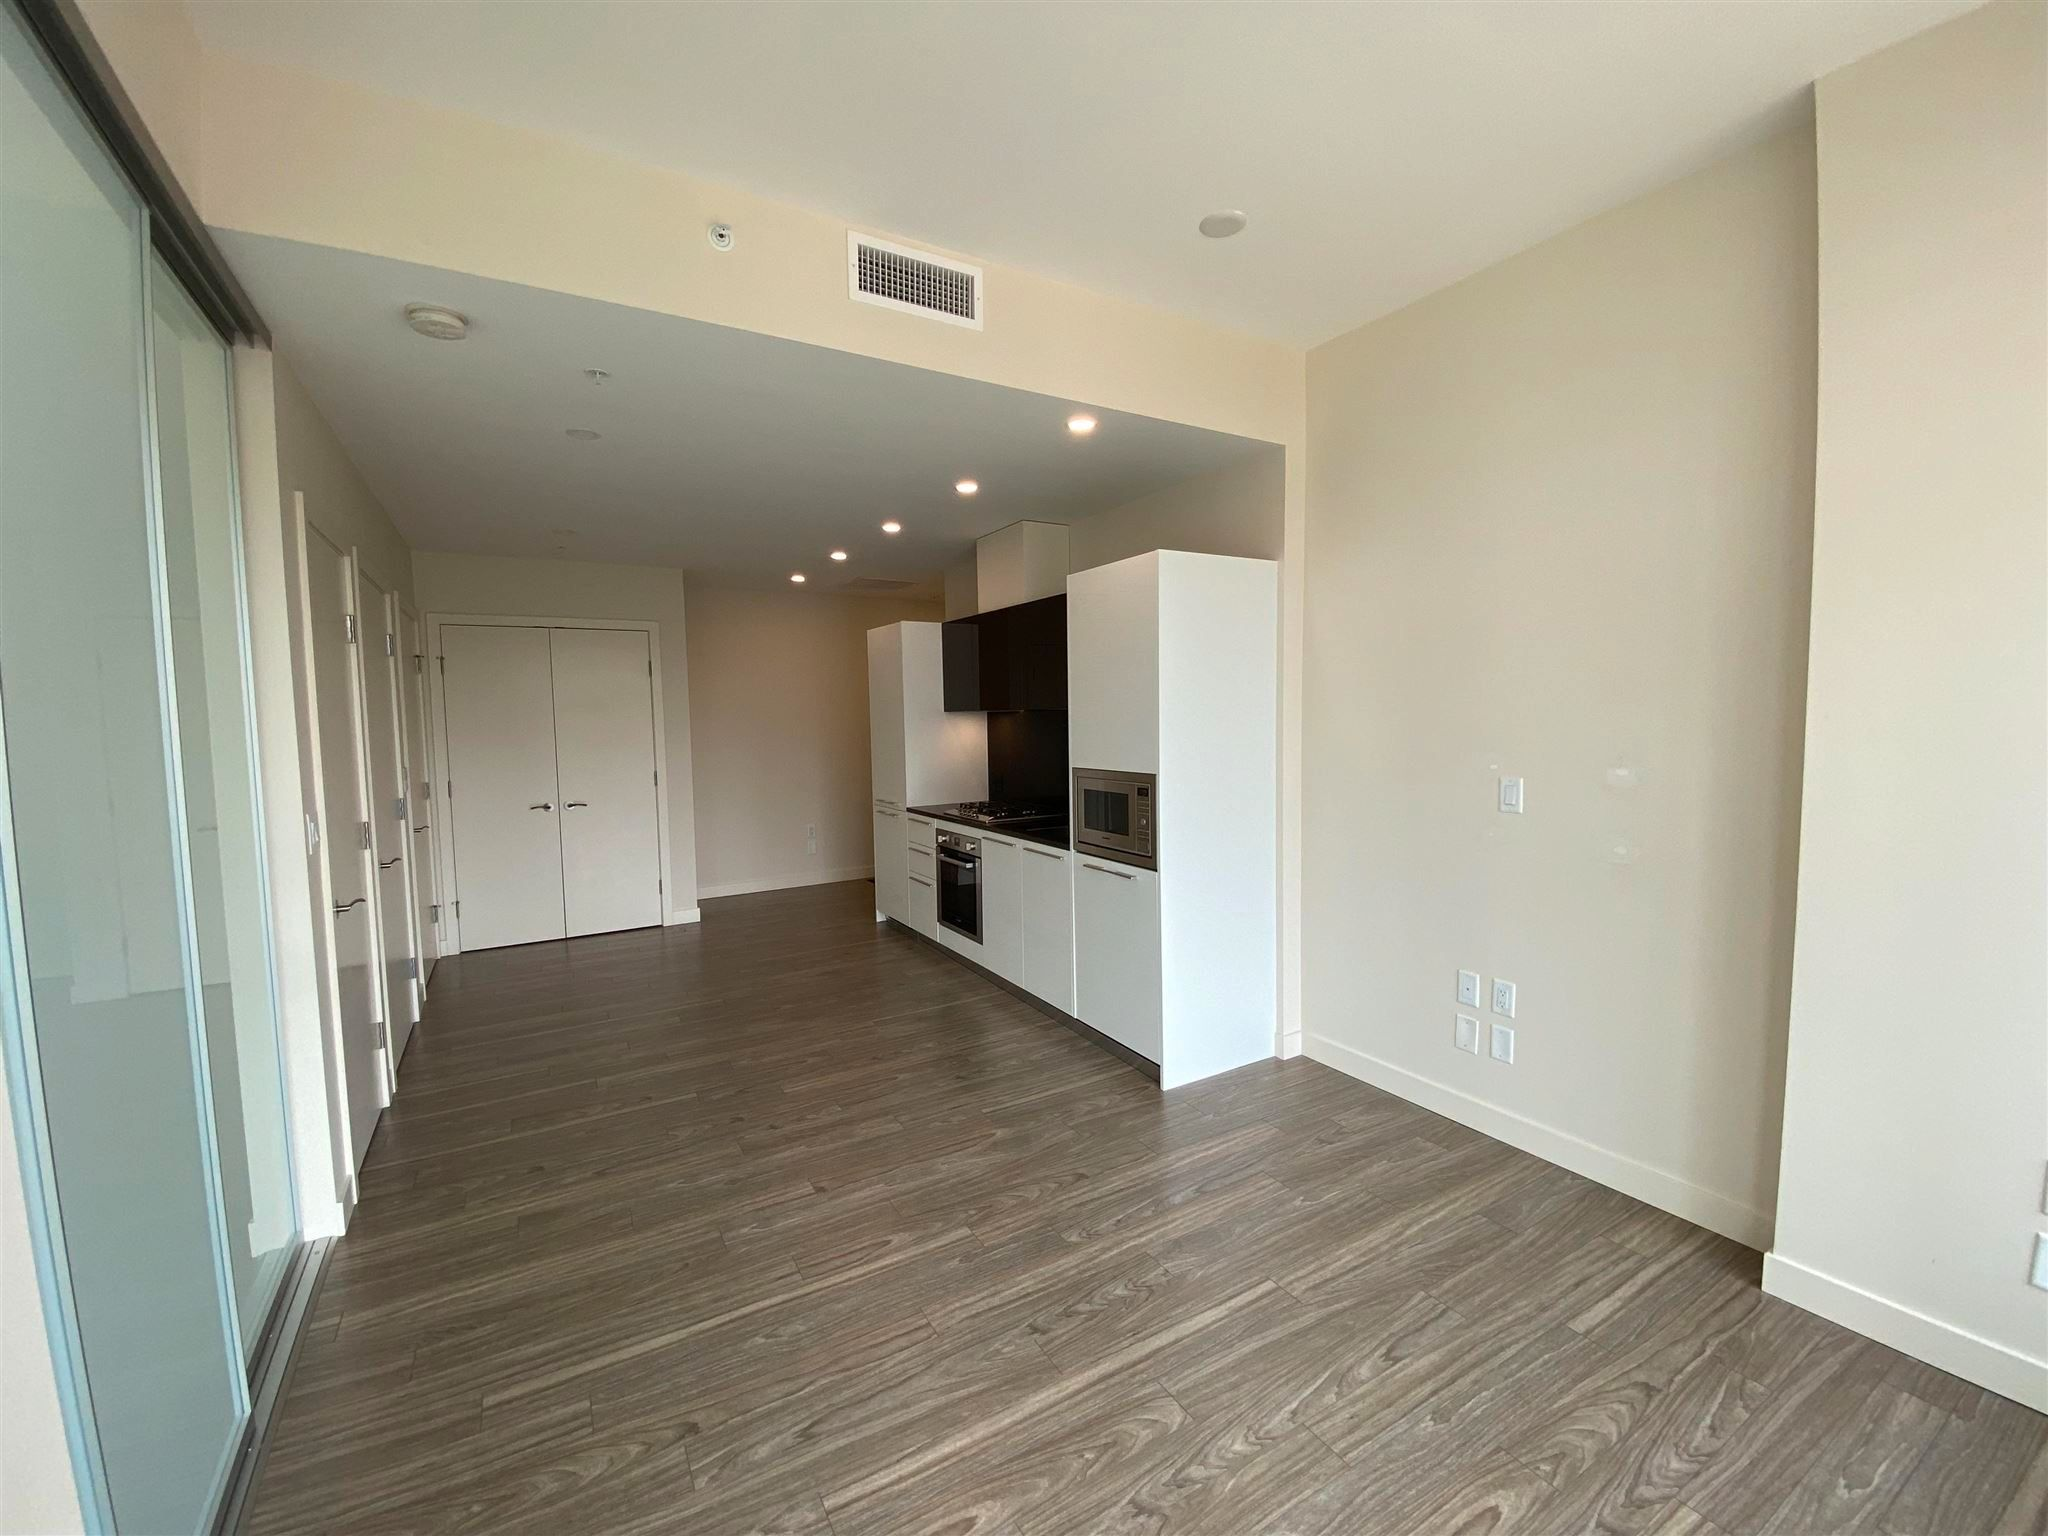 """Photo 8: Photos: 308 6288 CASSIE Avenue in Burnaby: Metrotown Condo for sale in """"GOLD HOUSE SOUTH TOWER"""" (Burnaby South)  : MLS®# R2606367"""